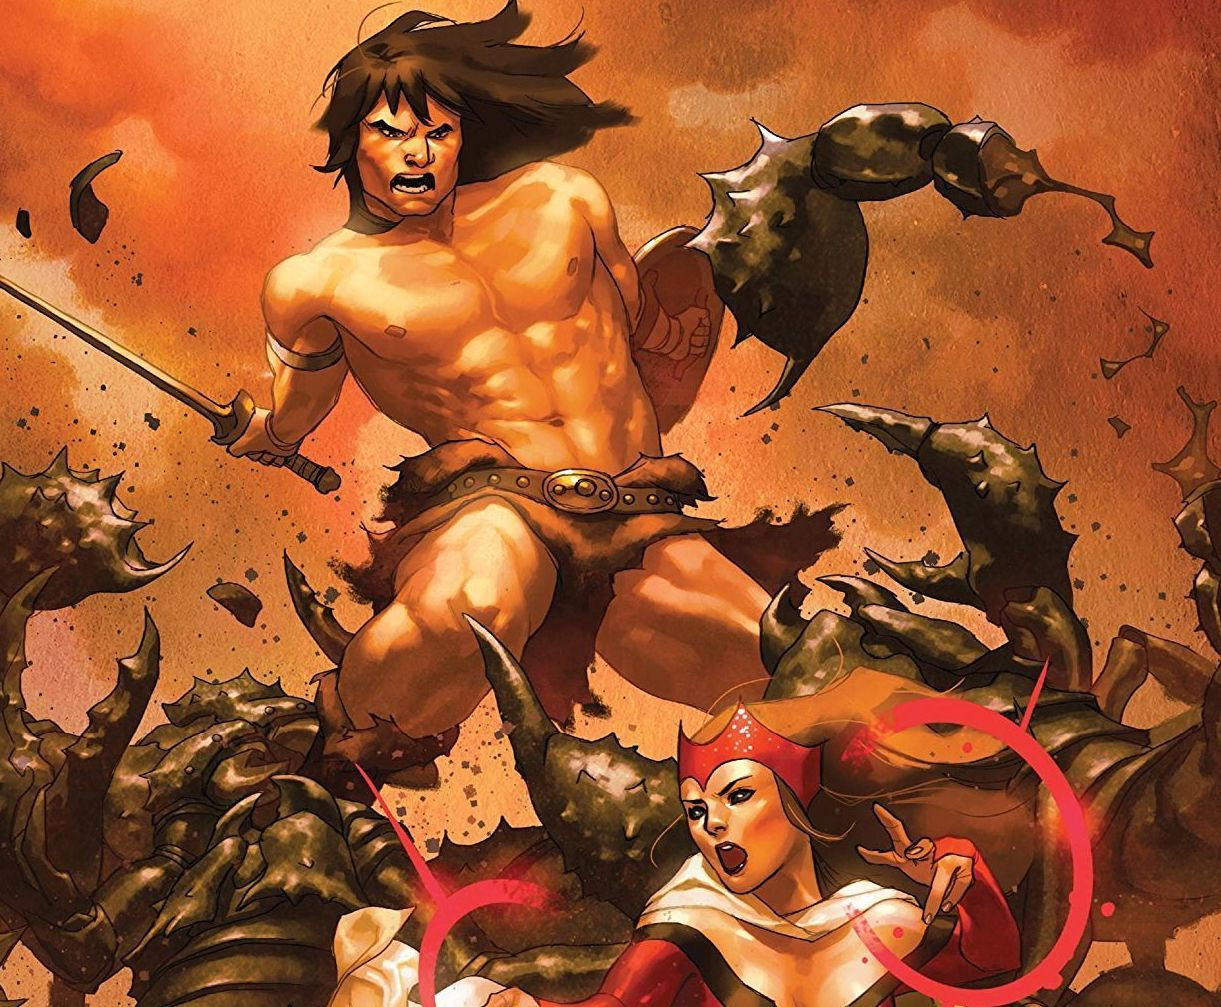 The Avengers...featuring Conan the Barbarian!